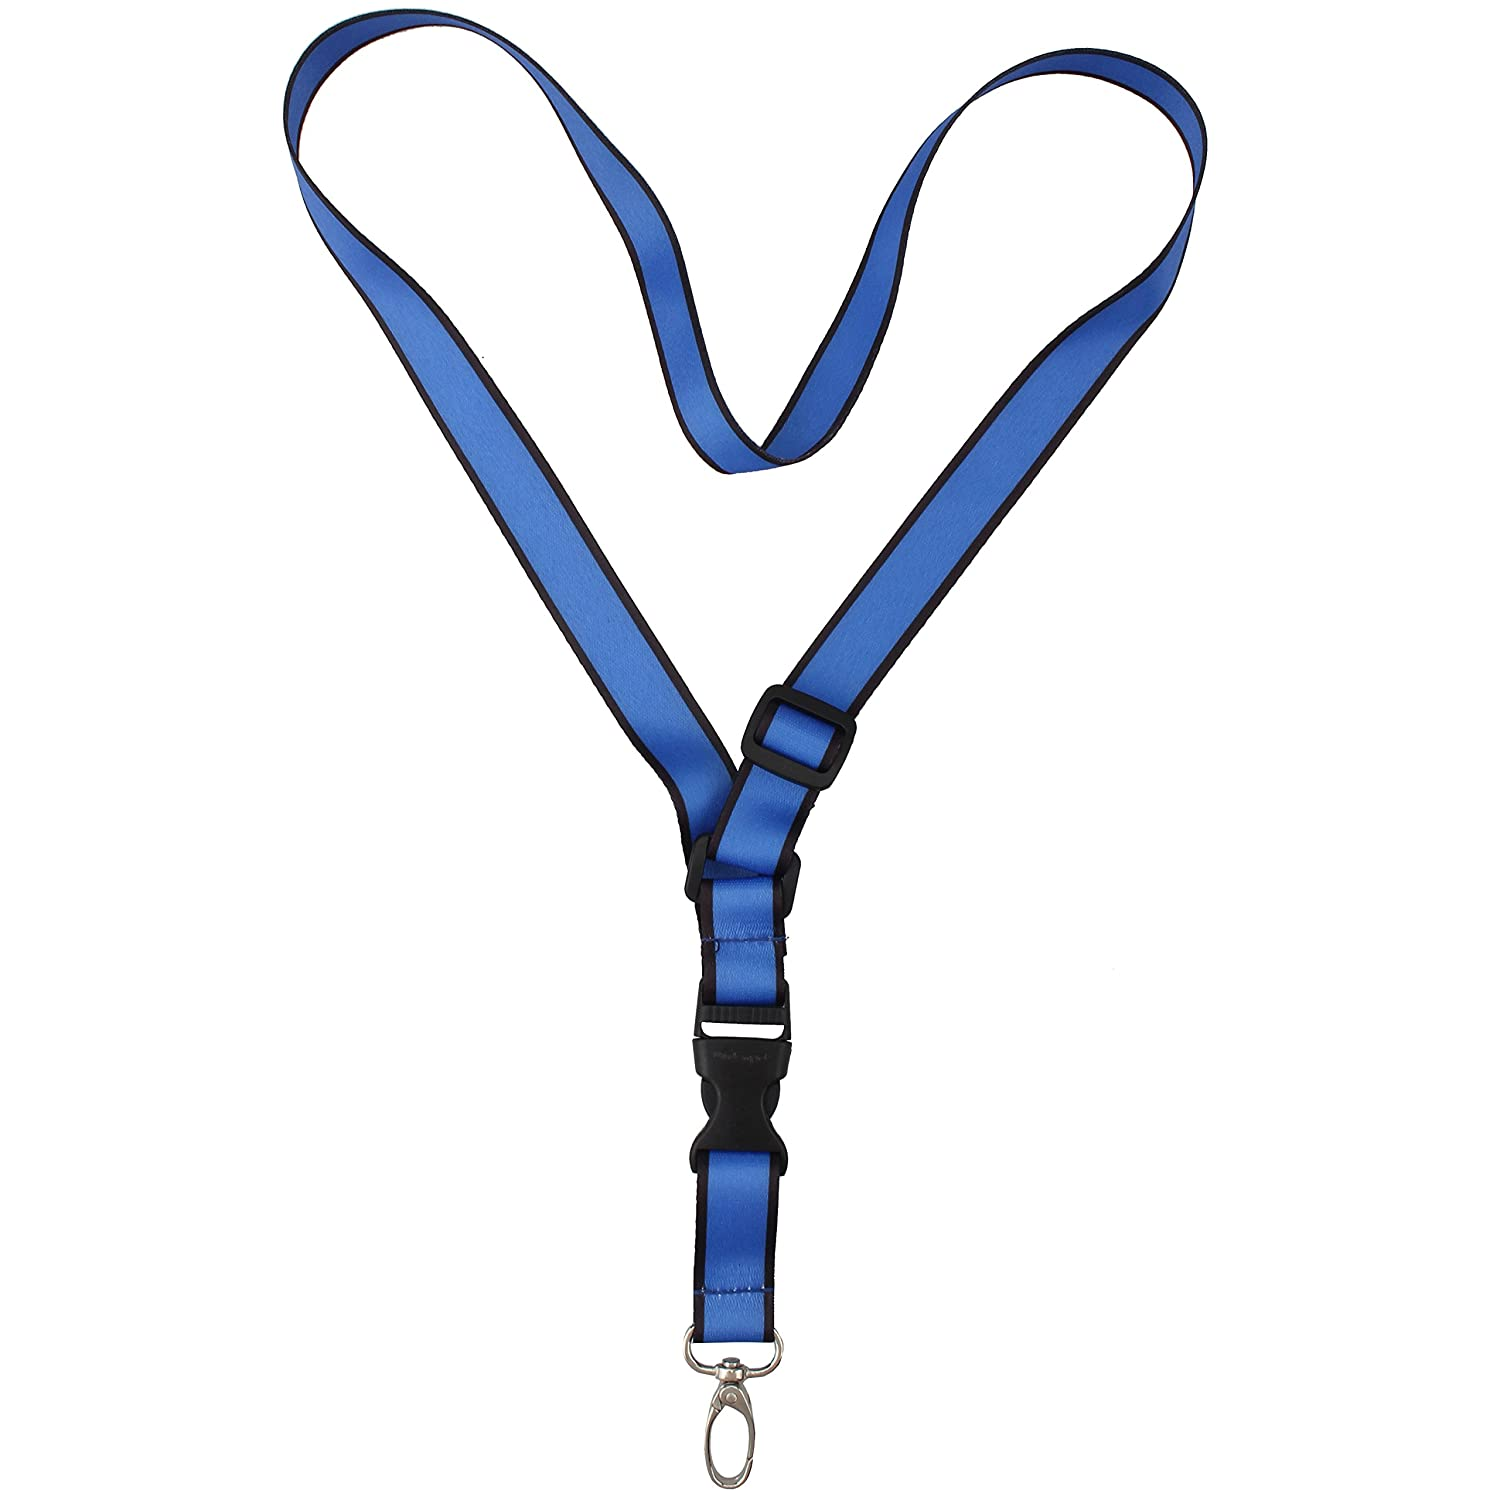 Office Lanyard, Wisdompro® Adjustable Length, Polyester Neck Strap with Oval Clasp & Detachable Buckle for ID, Name Tag, Company Badge Holder, and Keys - Sunflower